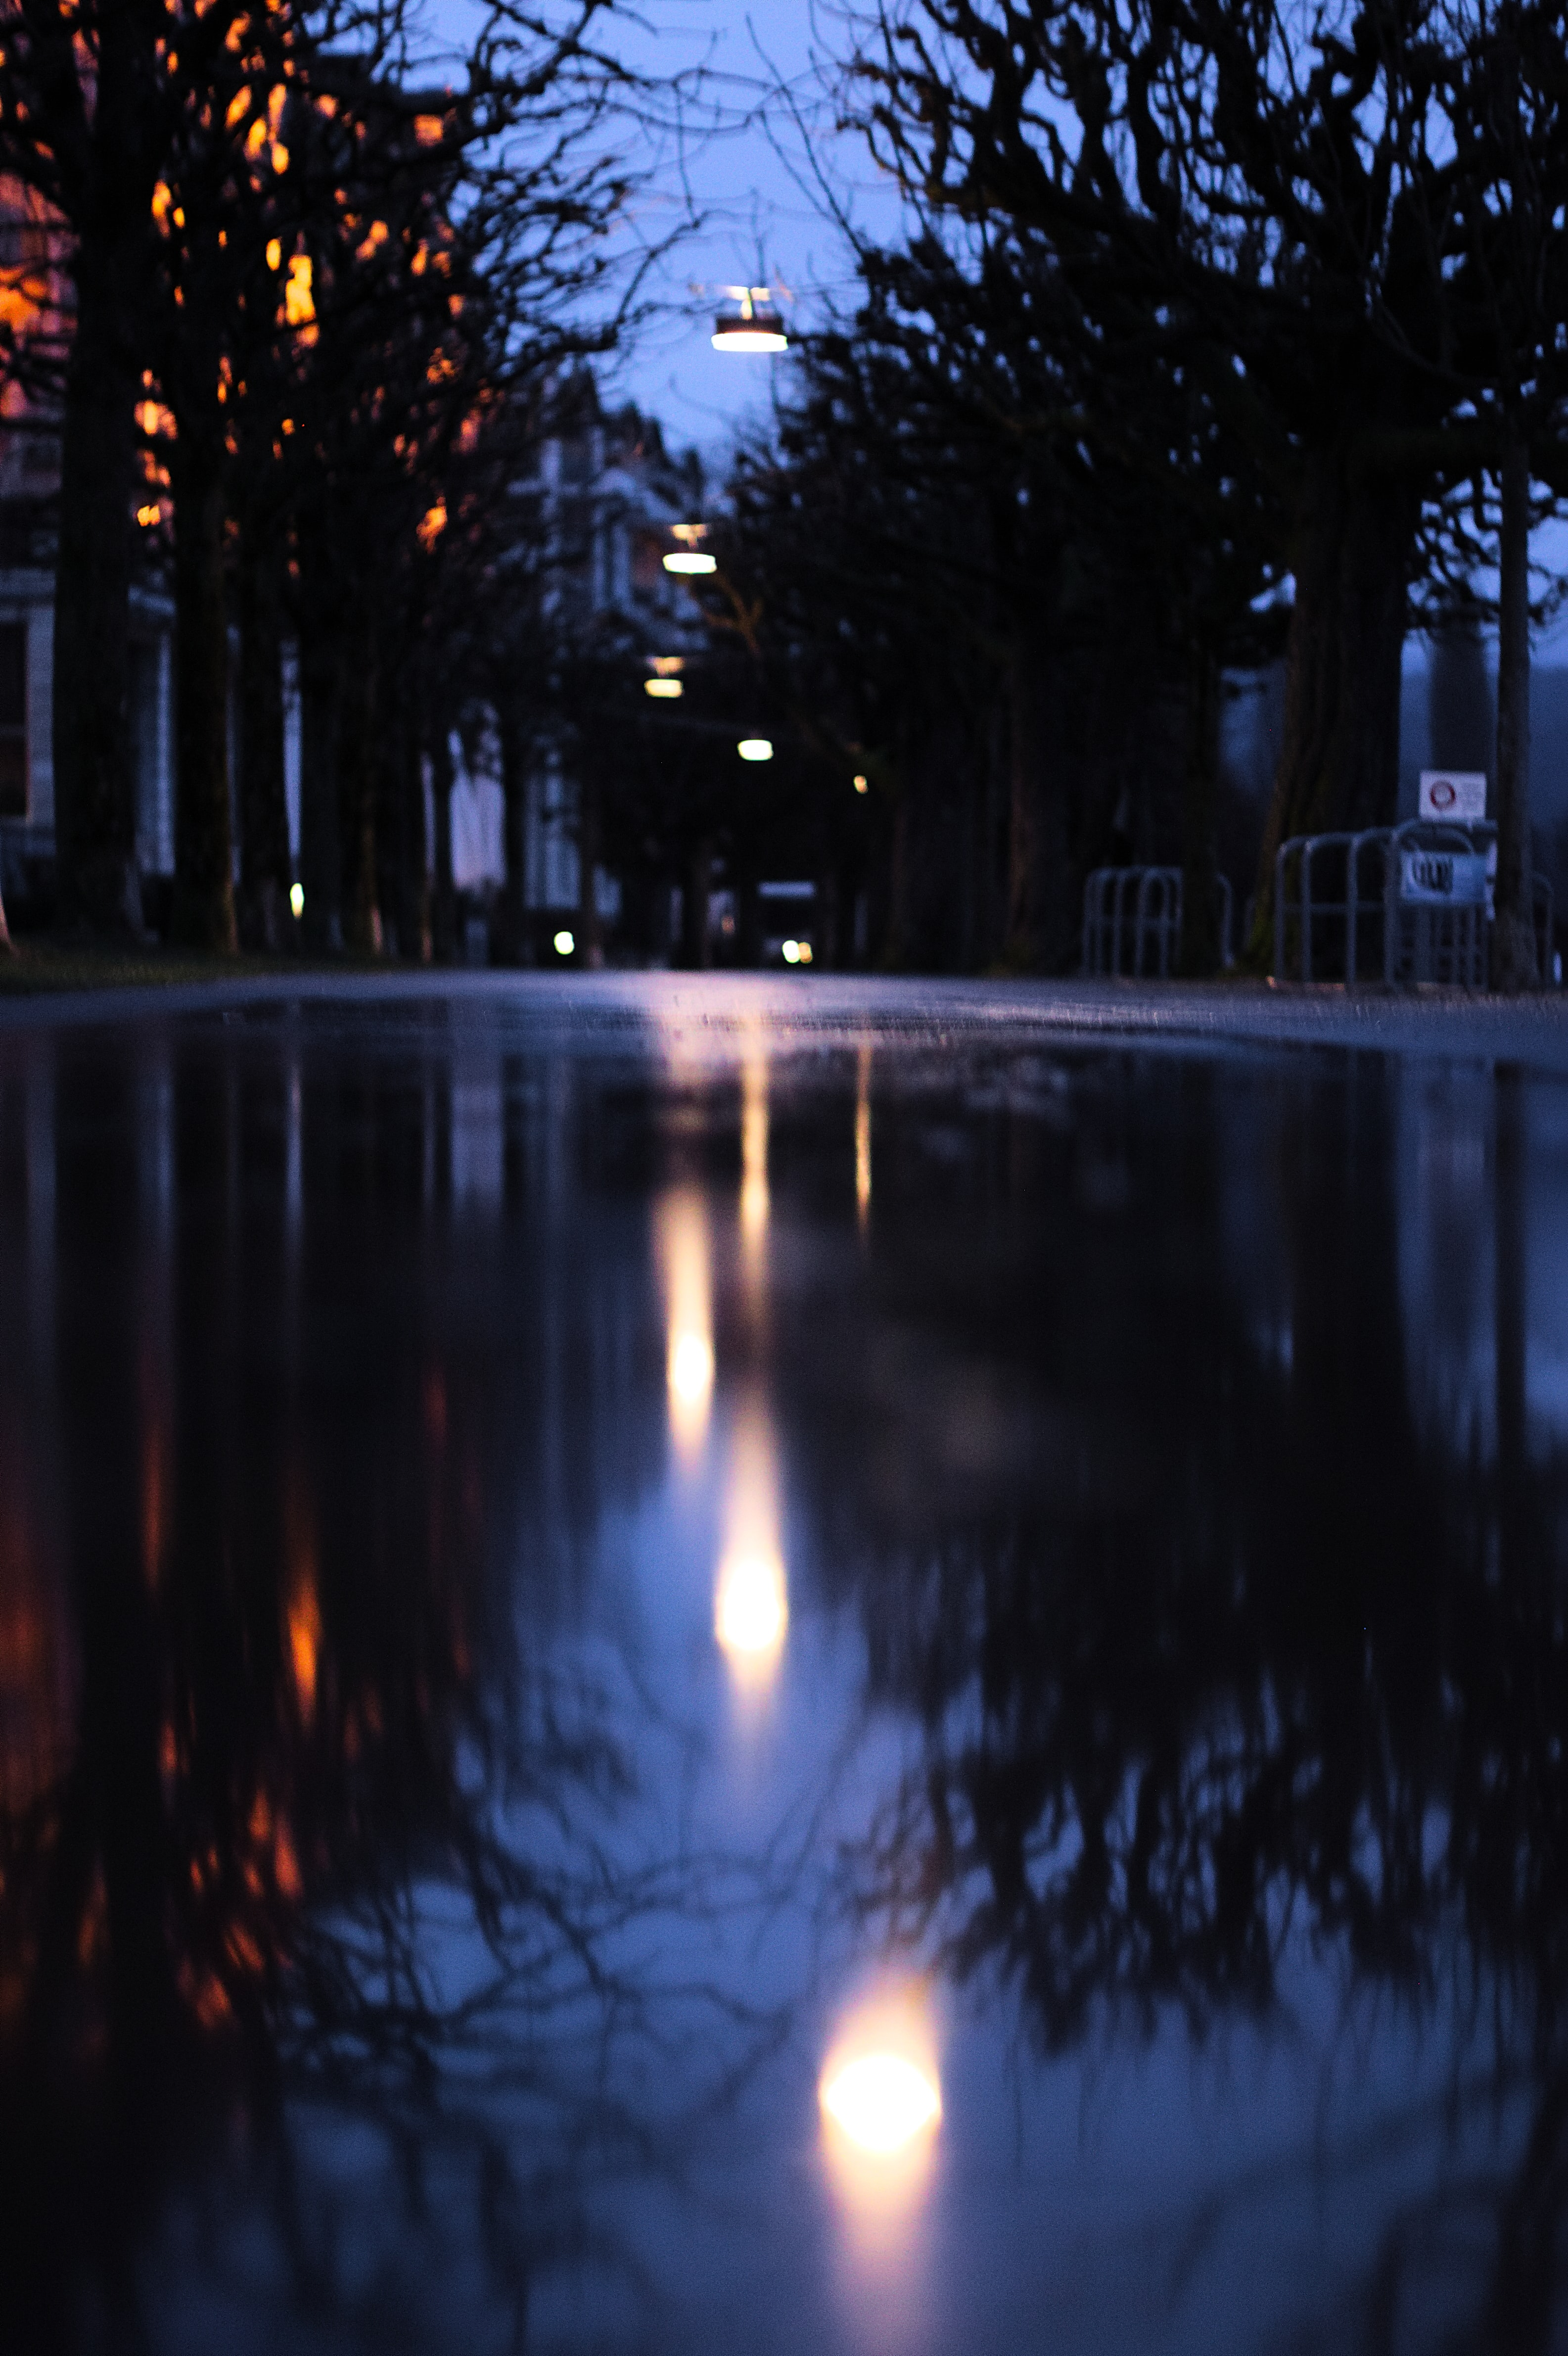 close up photography of street near trees at night time